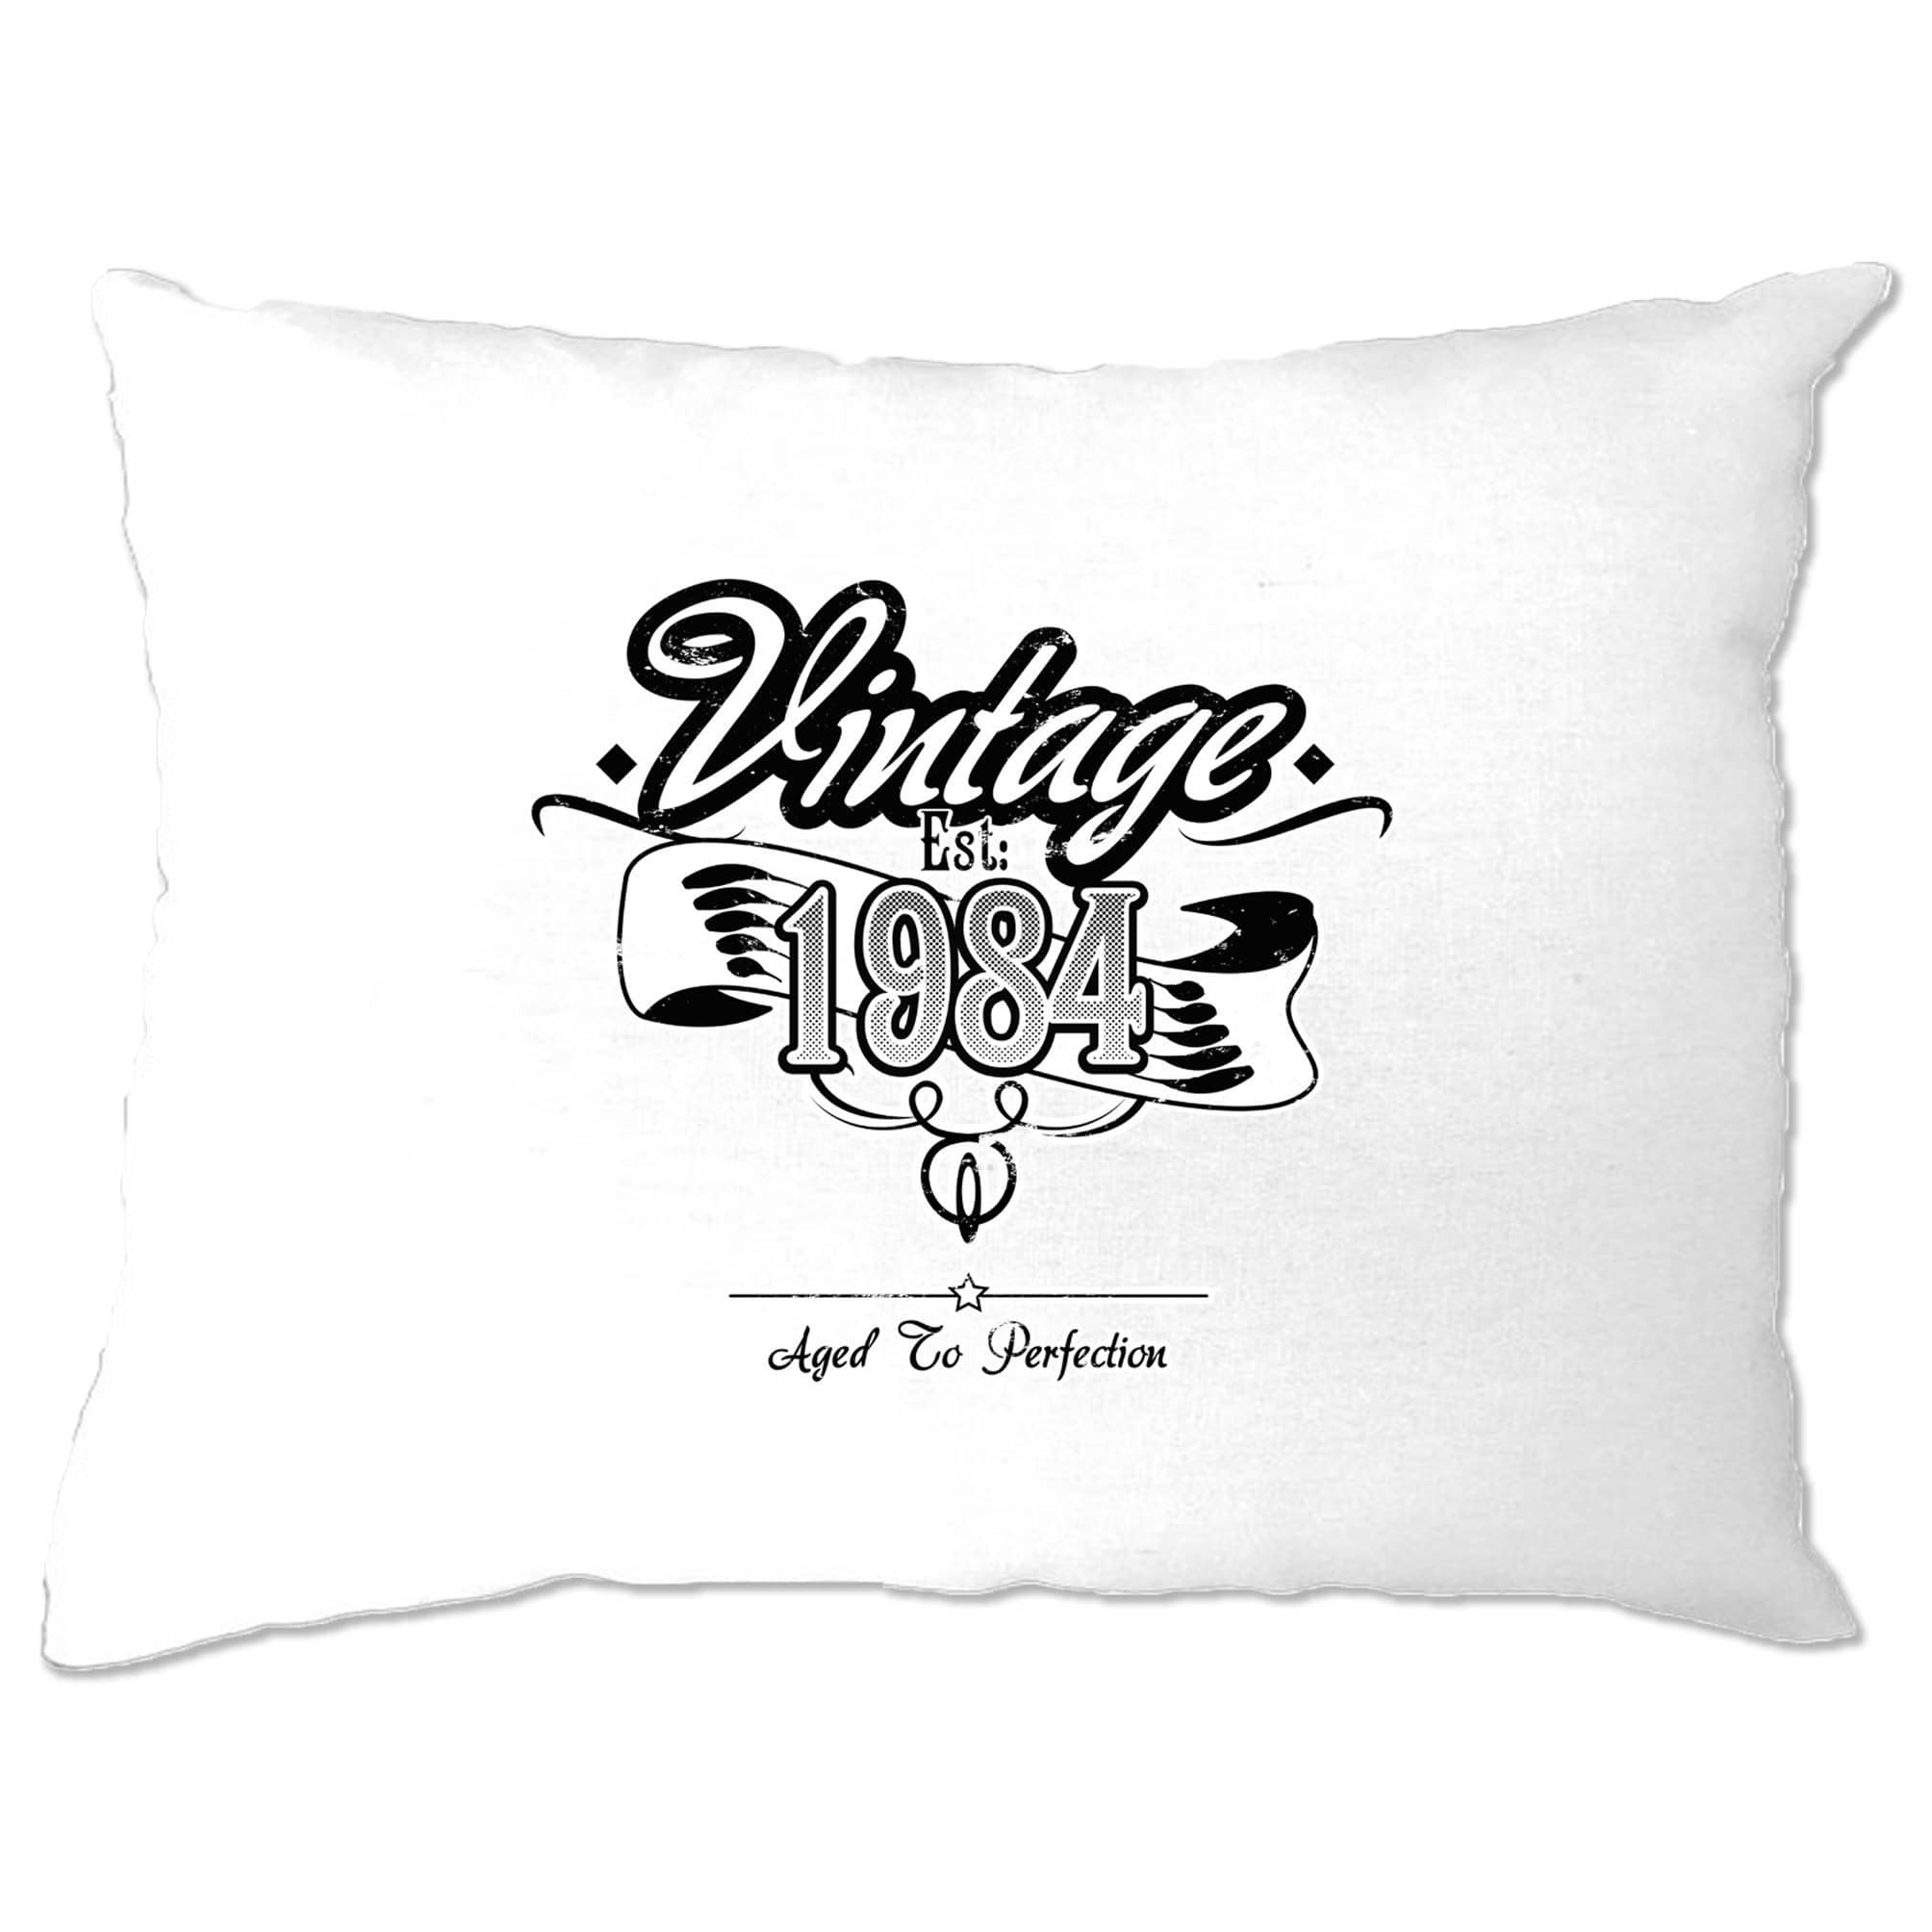 Birthday Pillow Case Vintage Est 1984 Aged To Perfection